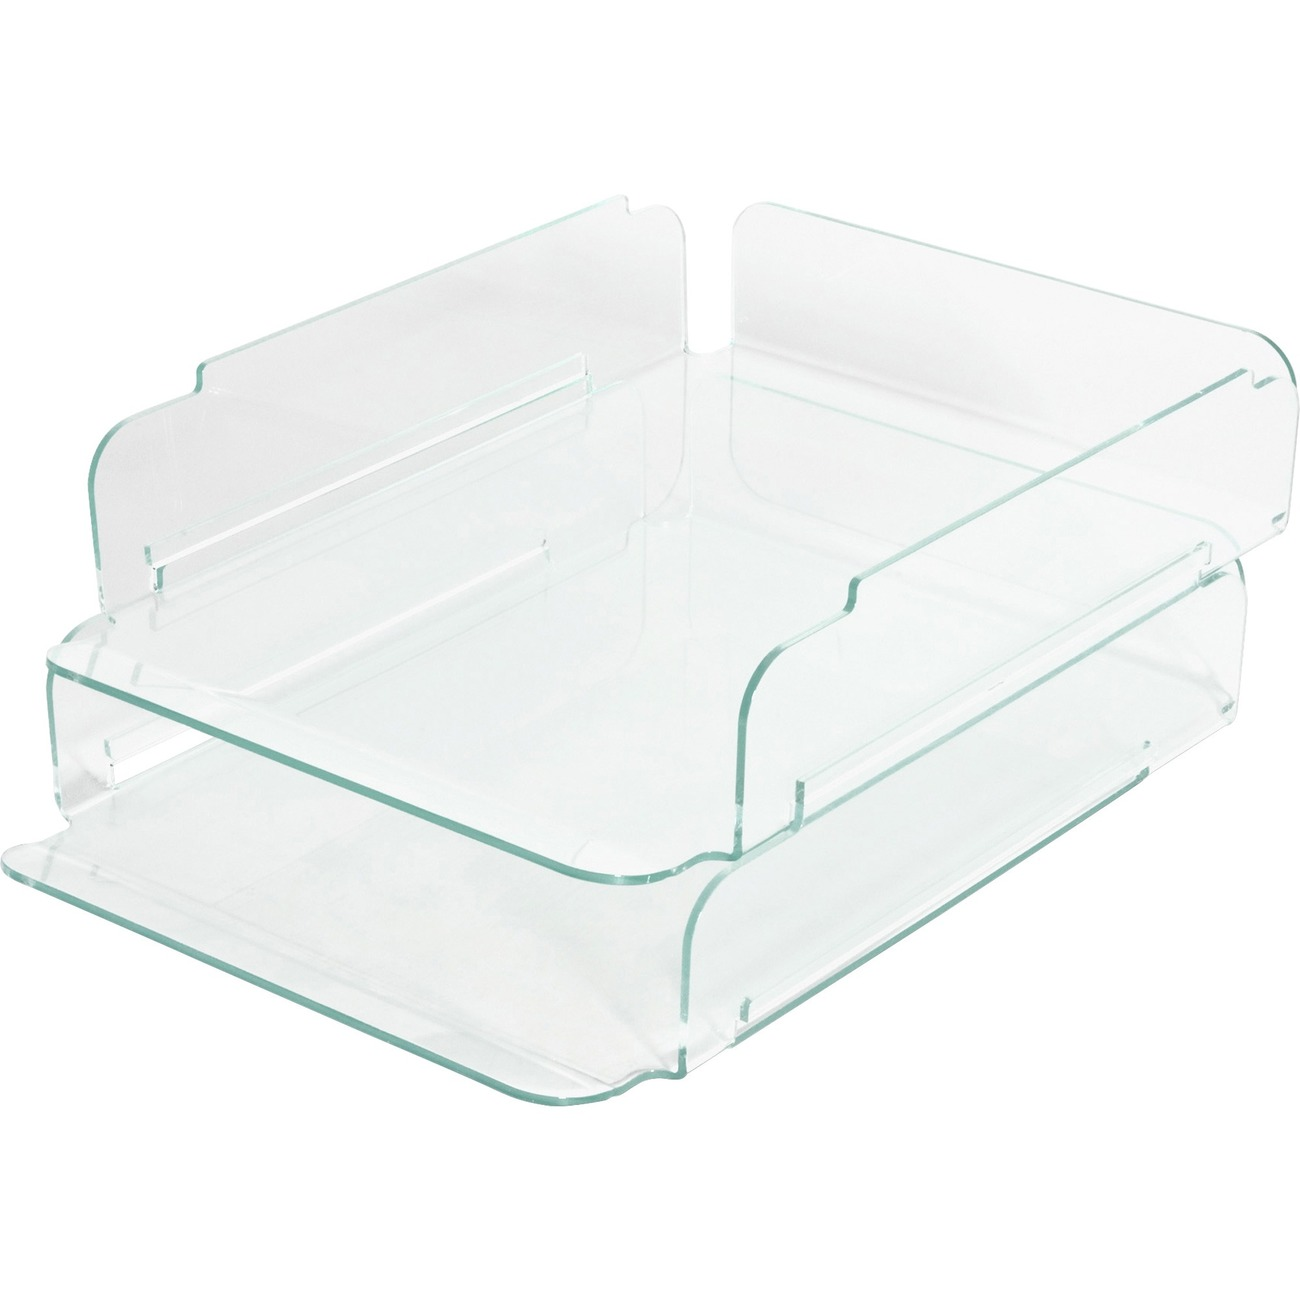 Lorell Stacking Letter Trays   Desktop   Clear, Green   Acrylic   2 / Each